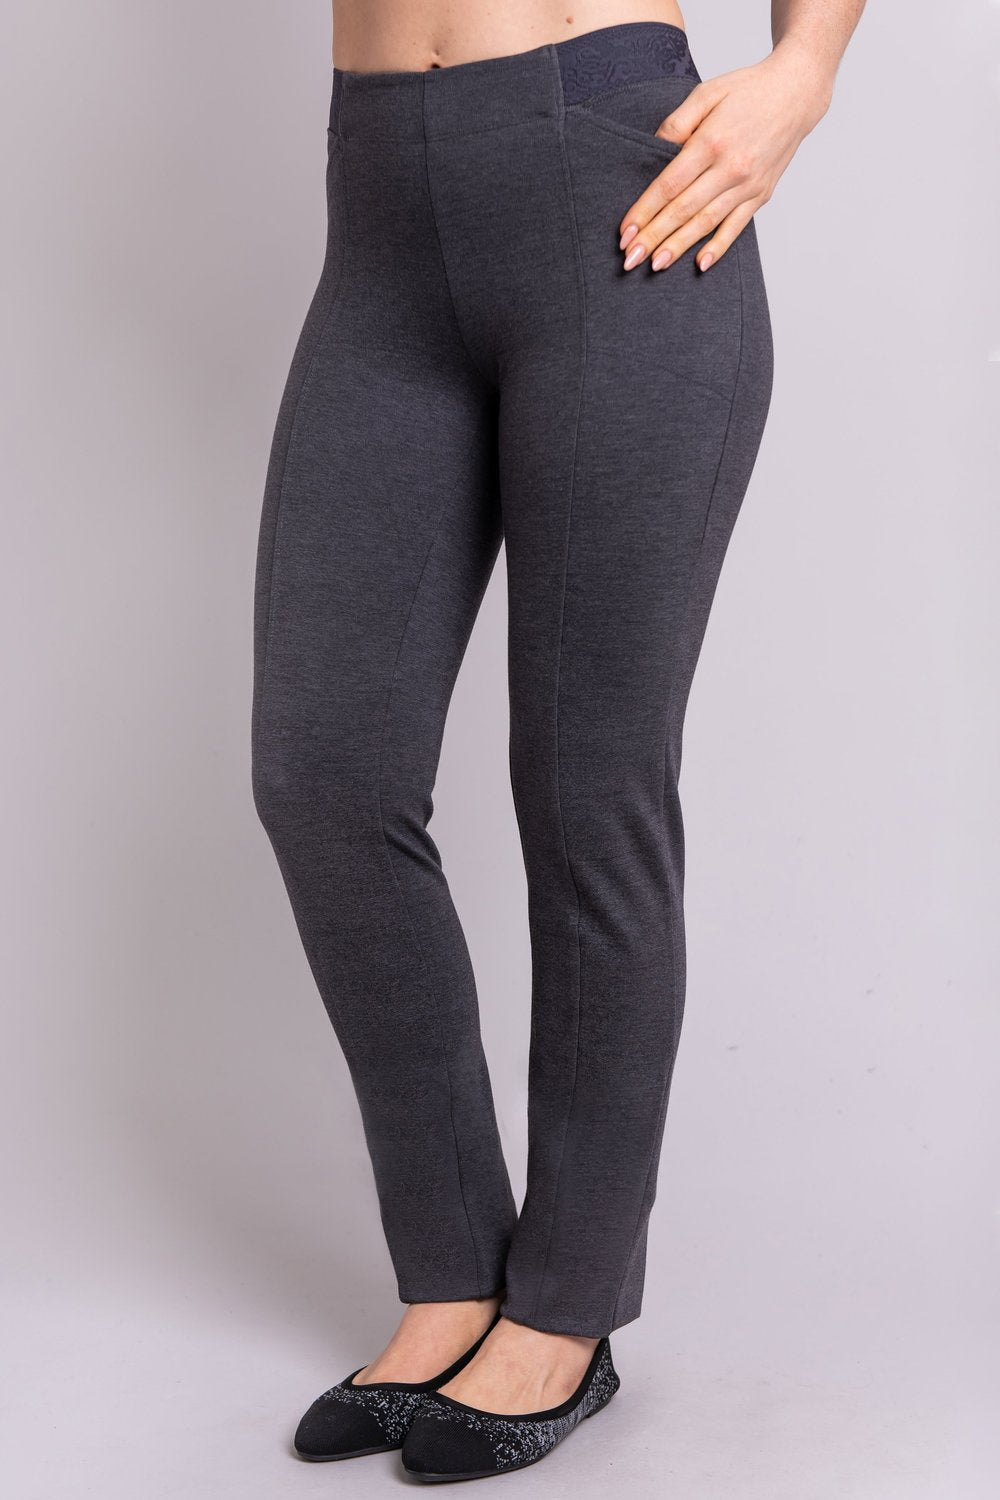 Women's petite grey tailored pant, with slim and narrow leg. Made of sustainable and natural bamboo fibers, fair-trade. Right side view with hand in pocket.